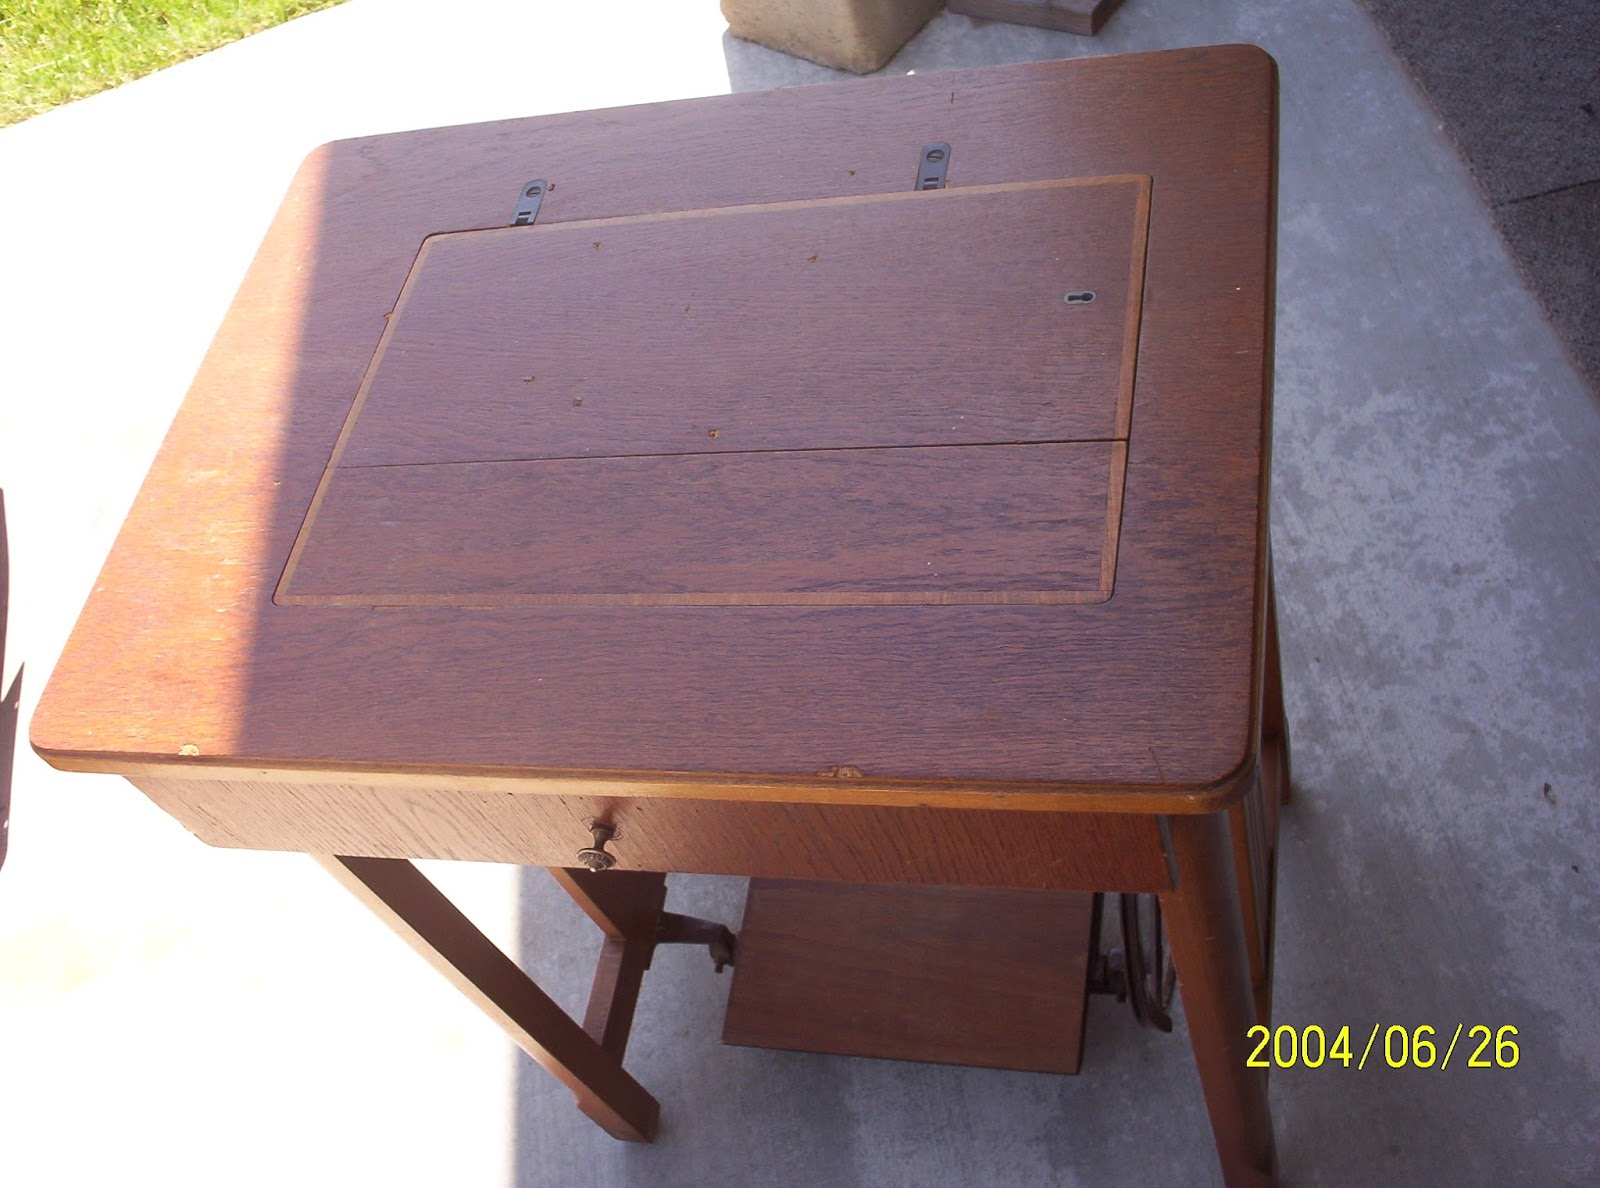 Torpedo Treadle Sewing Machine Table, In Closed Position, With Sewing  Machine Neatly Locked Under The Center Wood Insert. There Is A Very Short  Depth Drawer ...